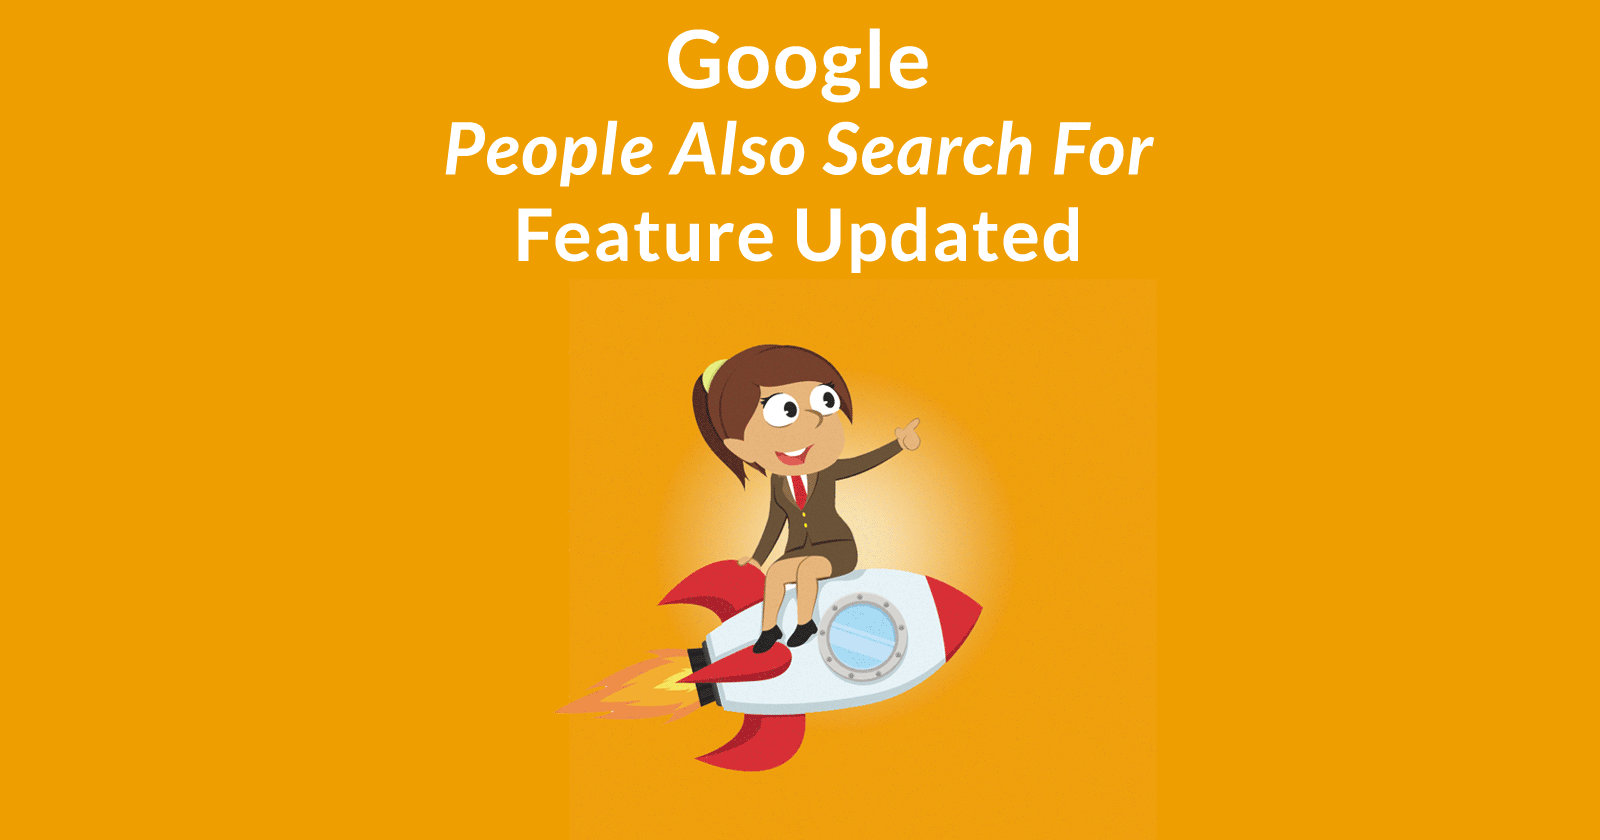 https://www.searchenginejournal.com/google-search-feature/238169/